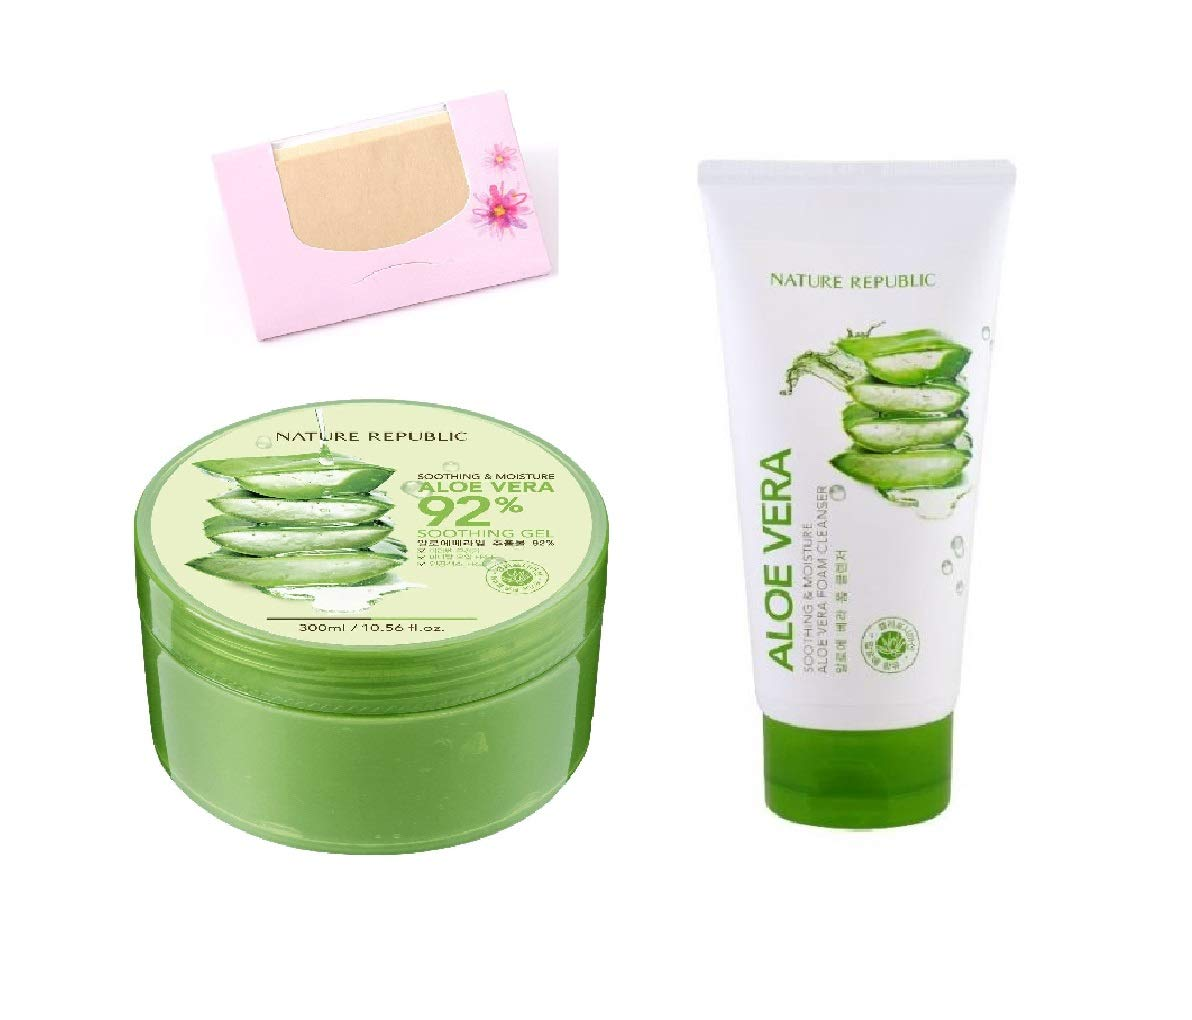 BUNDLE - Nature Republic New Soothing Moisture Aloe Vera GEL 92% 300ml + Nature Republic Soothing & Moisture Aloe Vera Foam Cleanser 150ml + SoltreeBundle Natural Hemp Paper 50pcs